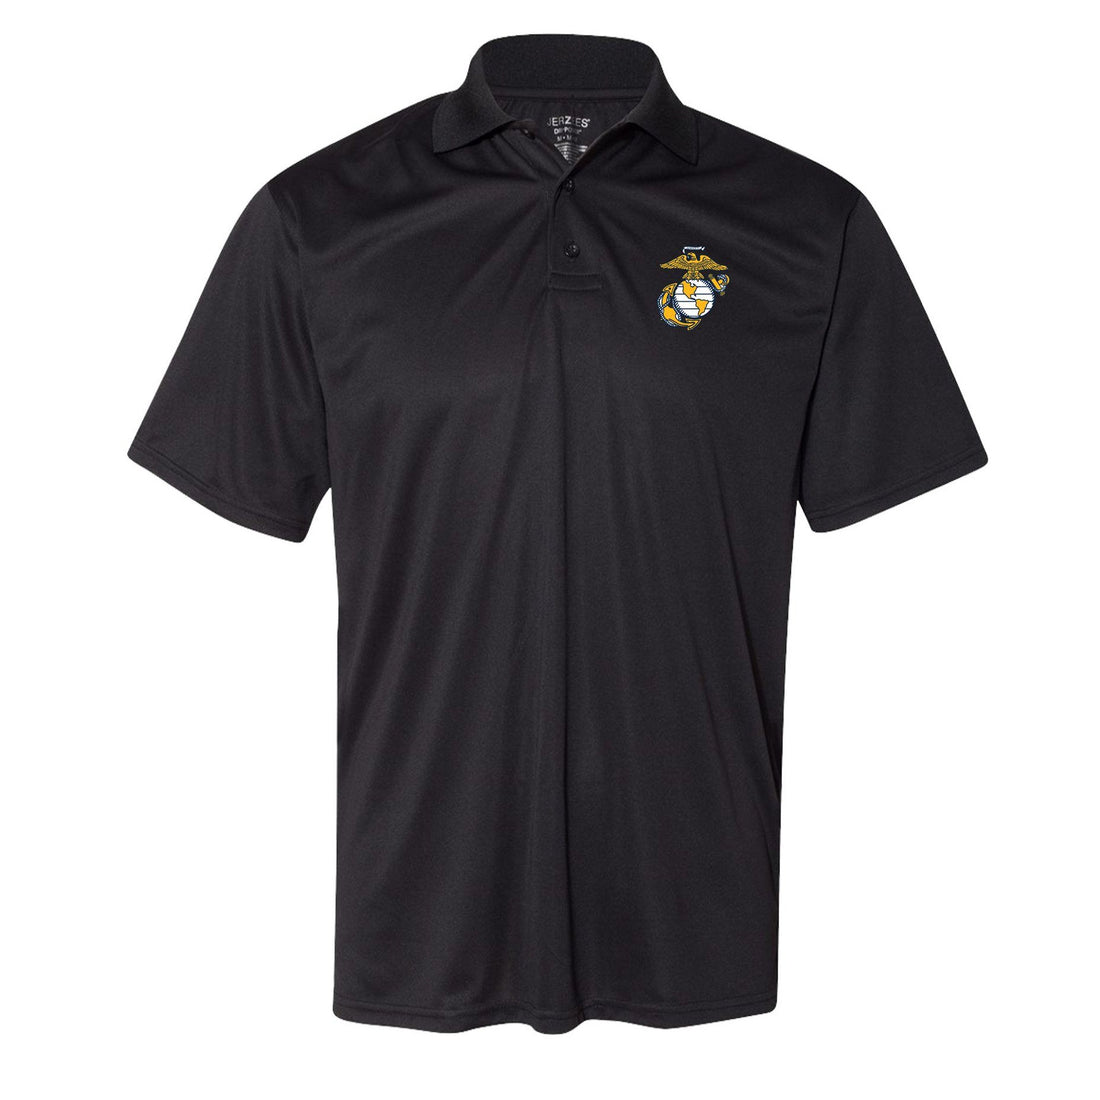 Front view of the charcoal USMC polo with the eagle, globe, and anchor in the corner from Marine Corps Direct.